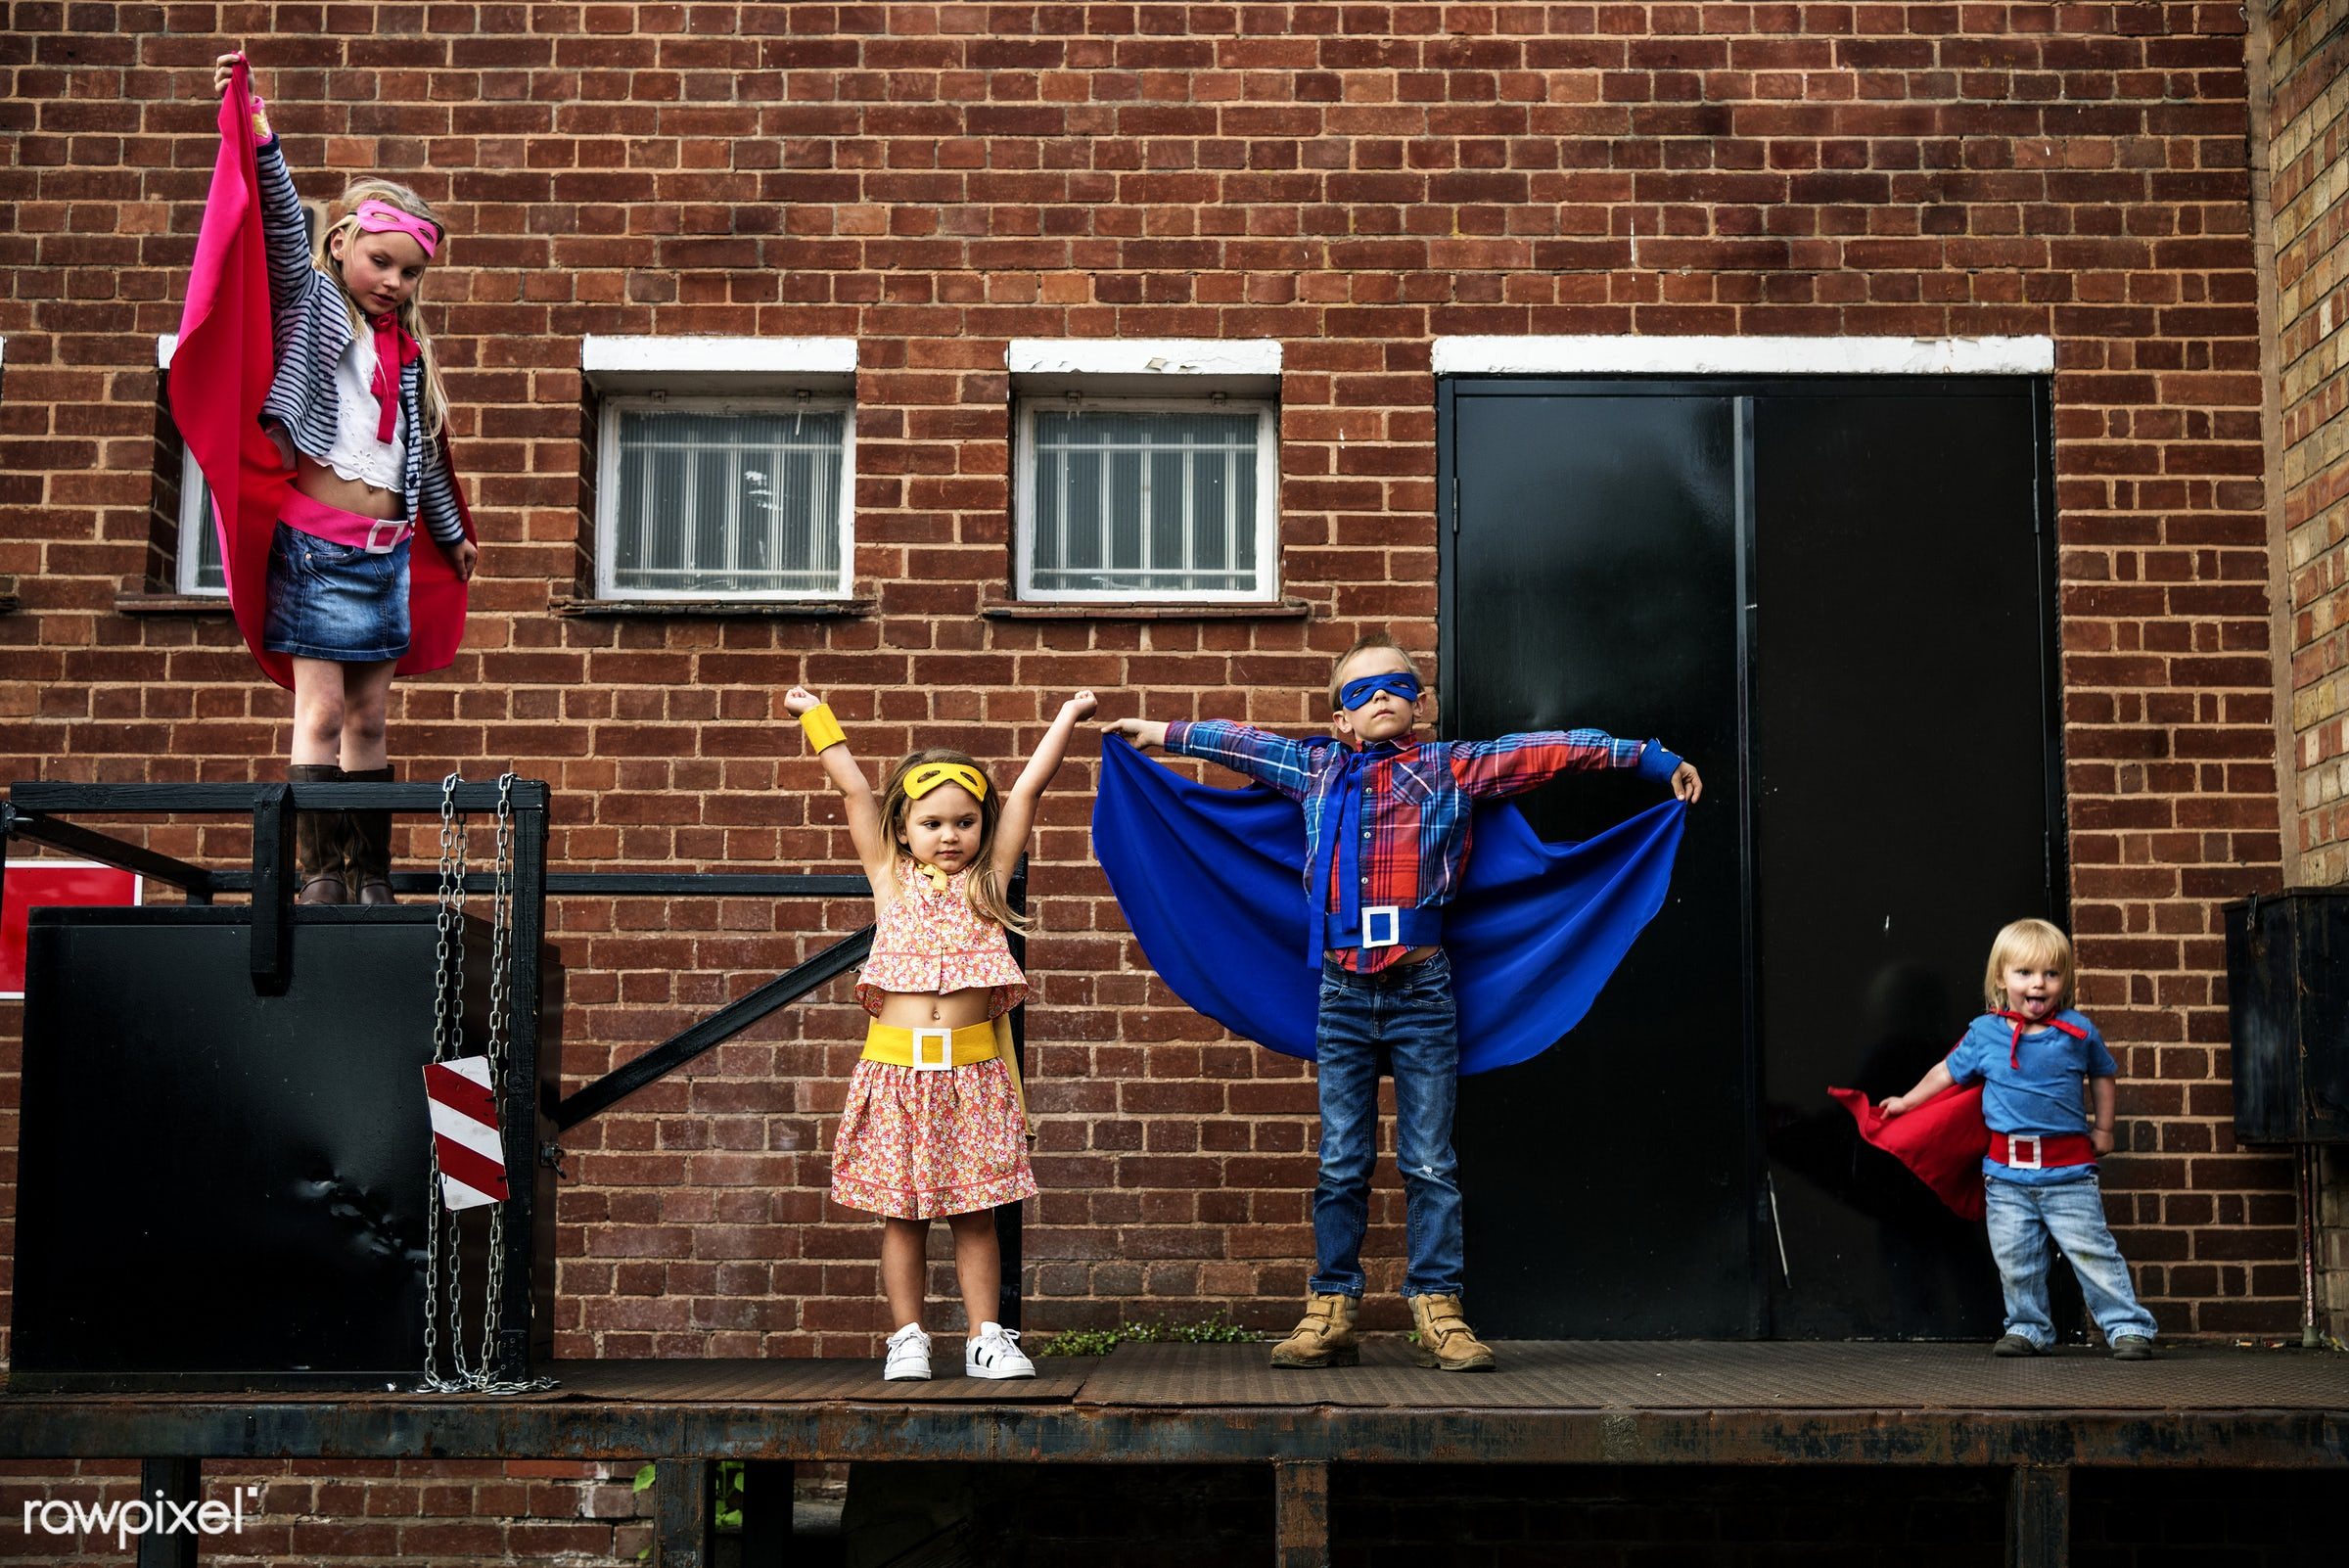 Caucasian children superhero and play shoot - learning, activity, aspirations, boy, brave, brick wall, brother, building,...